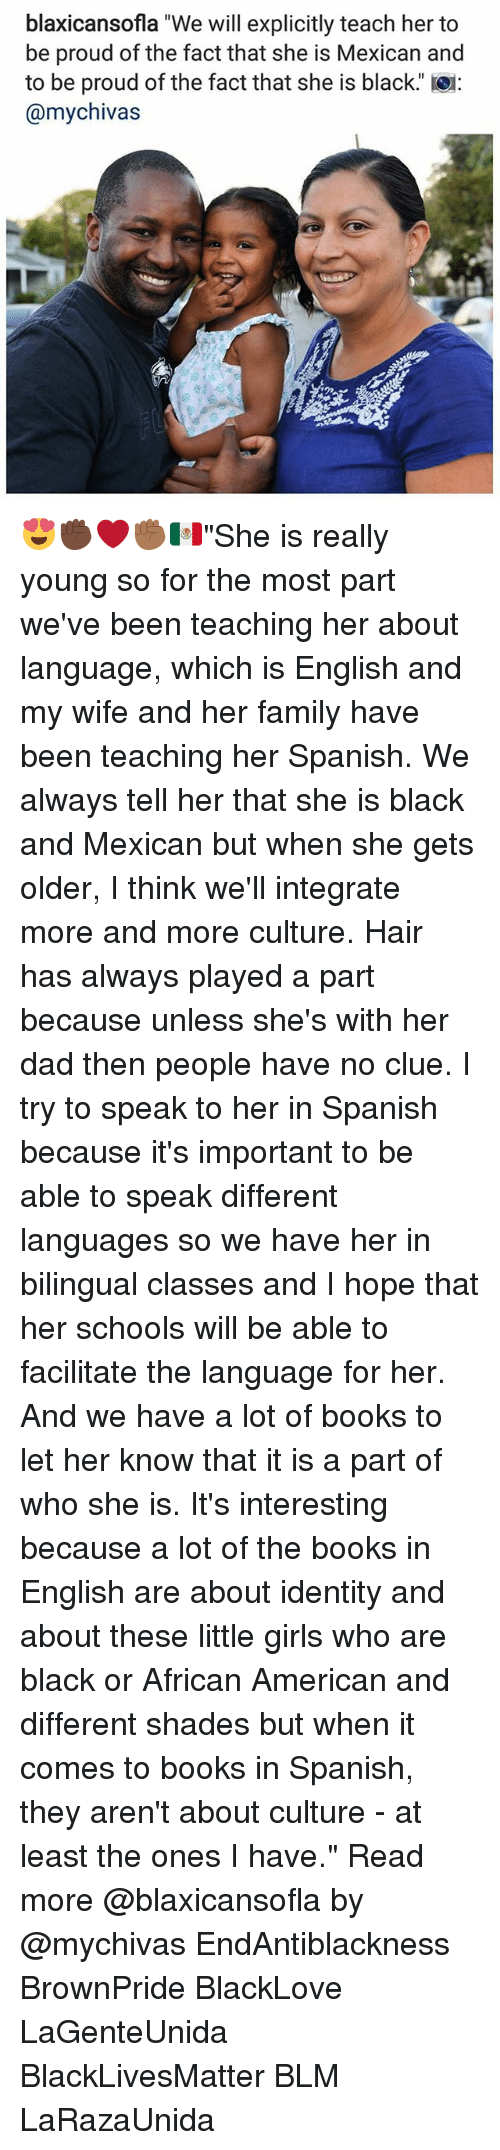 "Black Lives Matter, Books, and Dad: blaxicansofla ""We will explicitly teach her to  be proud of the fact that she is Mexican and  to be proud of the fact that she is black.  @mychivas 😍✊🏿❤✊🏾🇲🇽""She is really young so for the most part we've been teaching her about language, which is English and my wife and her family have been teaching her Spanish. We always tell her that she is black and Mexican but when she gets older, I think we'll integrate more and more culture. Hair has always played a part because unless she's with her dad then people have no clue. I try to speak to her in Spanish because it's important to be able to speak different languages so we have her in bilingual classes and I hope that her schools will be able to facilitate the language for her. And we have a lot of books to let her know that it is a part of who she is. It's interesting because a lot of the books in English are about identity and about these little girls who are black or African American and different shades but when it comes to books in Spanish, they aren't about culture - at least the ones I have."" Read more @blaxicansofla by @mychivas EndAntiblackness BrownPride BlackLove LaGenteUnida BlackLivesMatter BLM LaRazaUnida"